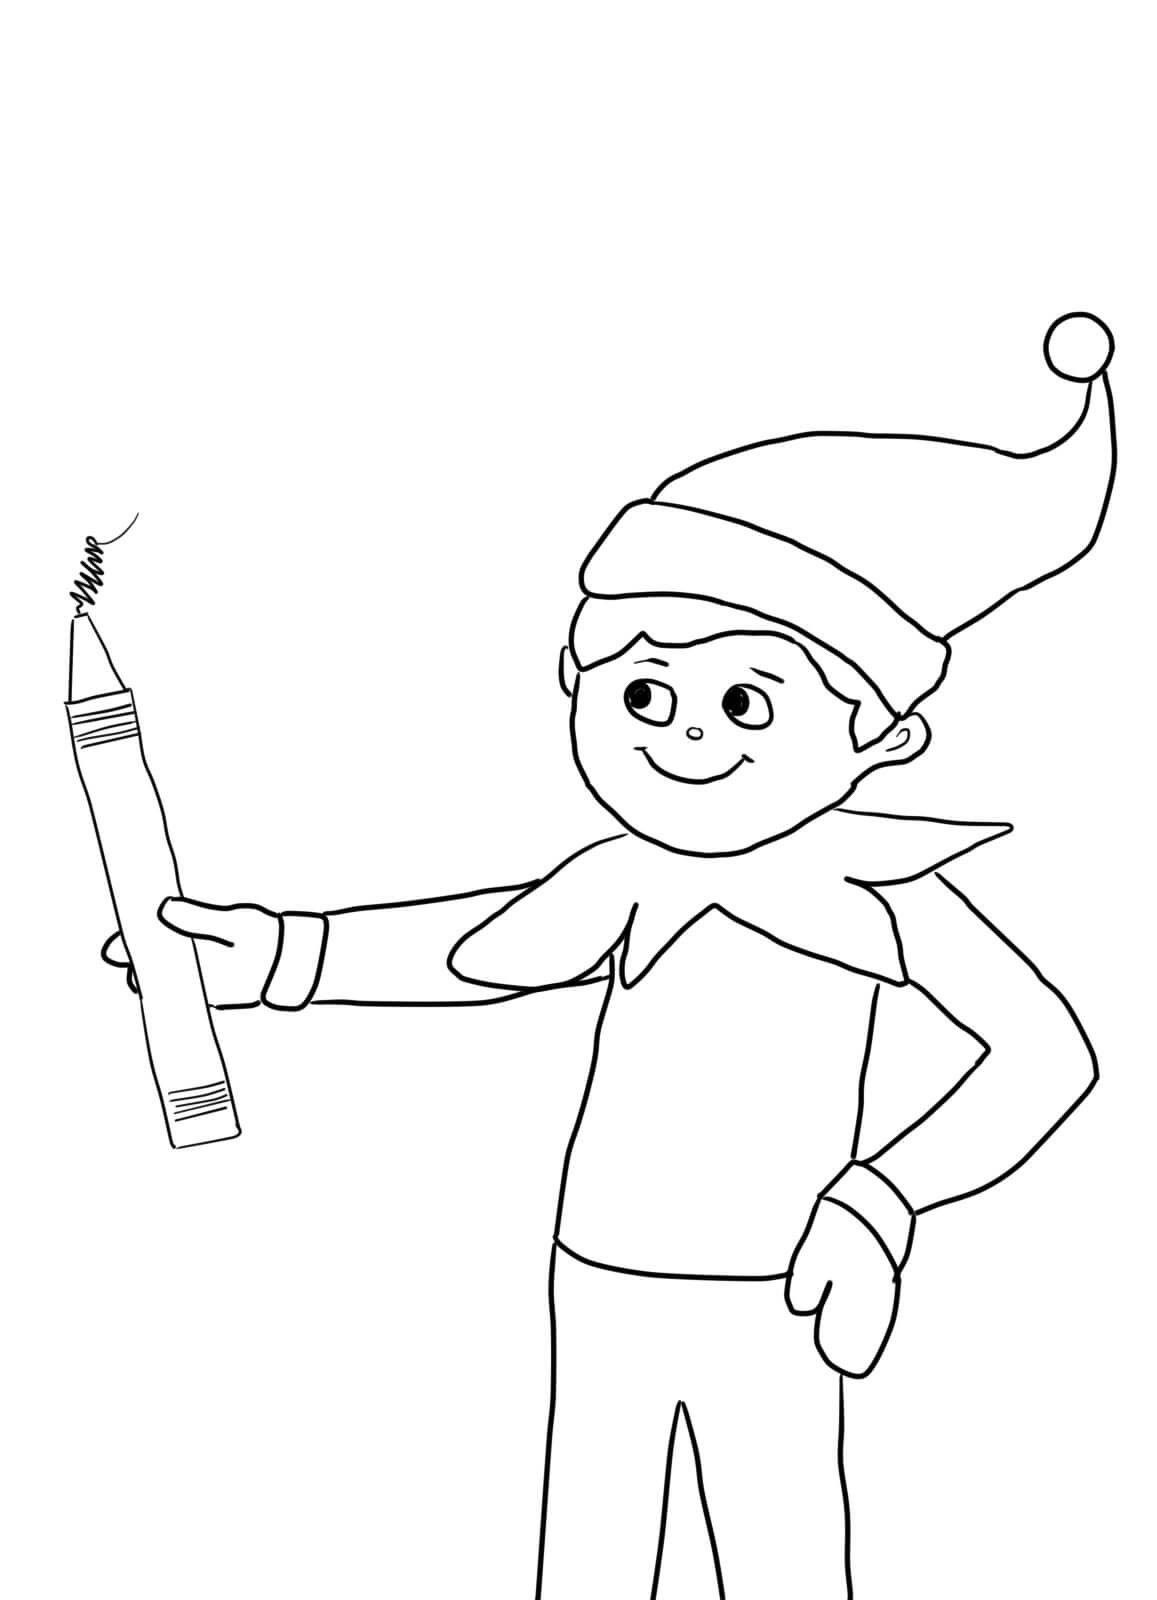 elf on the shelf coloring book free elf on the shelf coloring pages printable coloring shelf book on elf the coloring